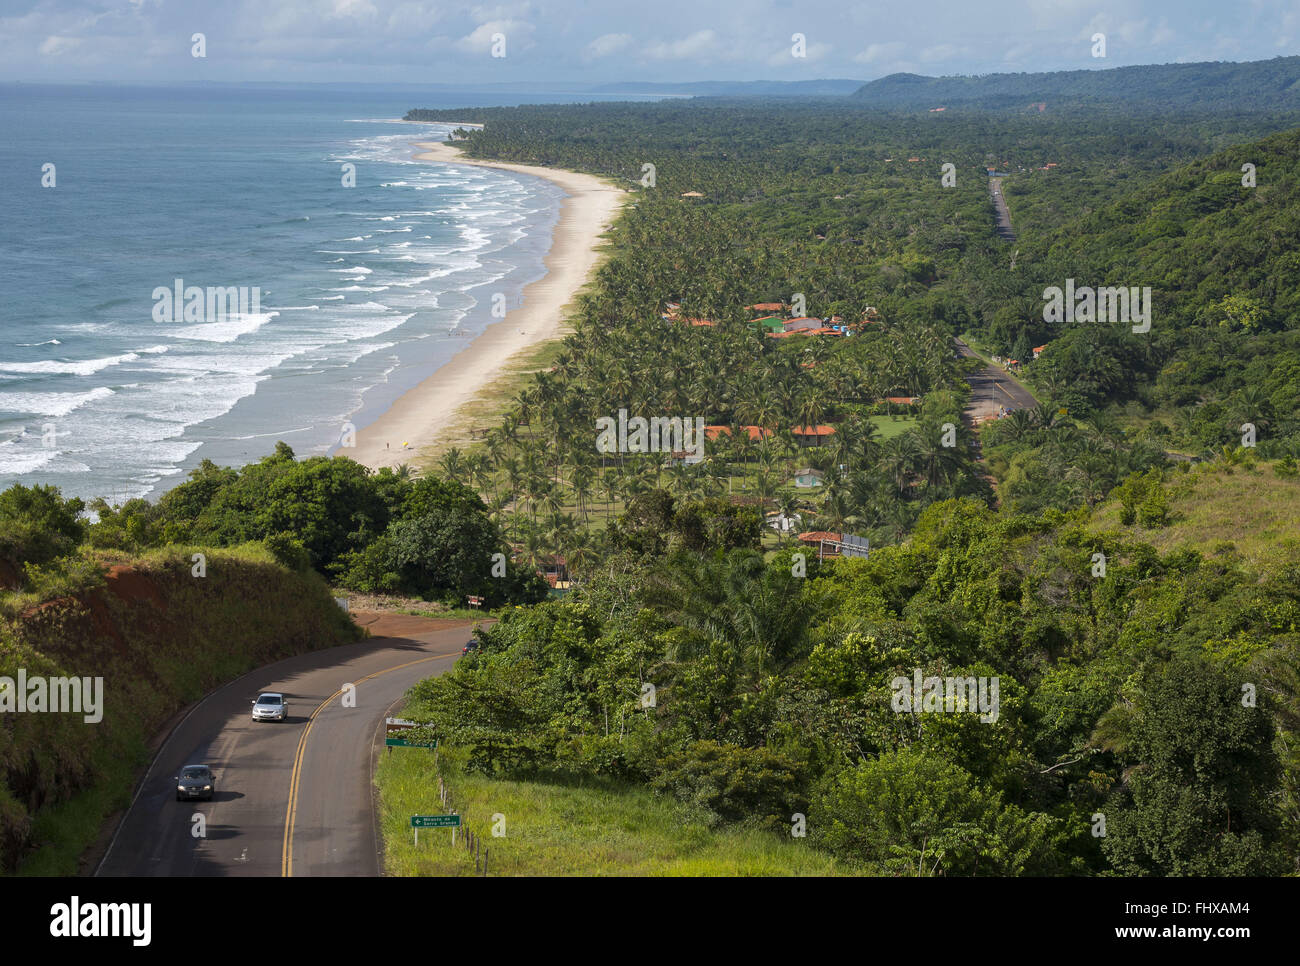 View of the BA-001 in the ascent of the Serra Grande - Sergi Beach Bar at the bottom - southern coast of Bahia - Stock Image